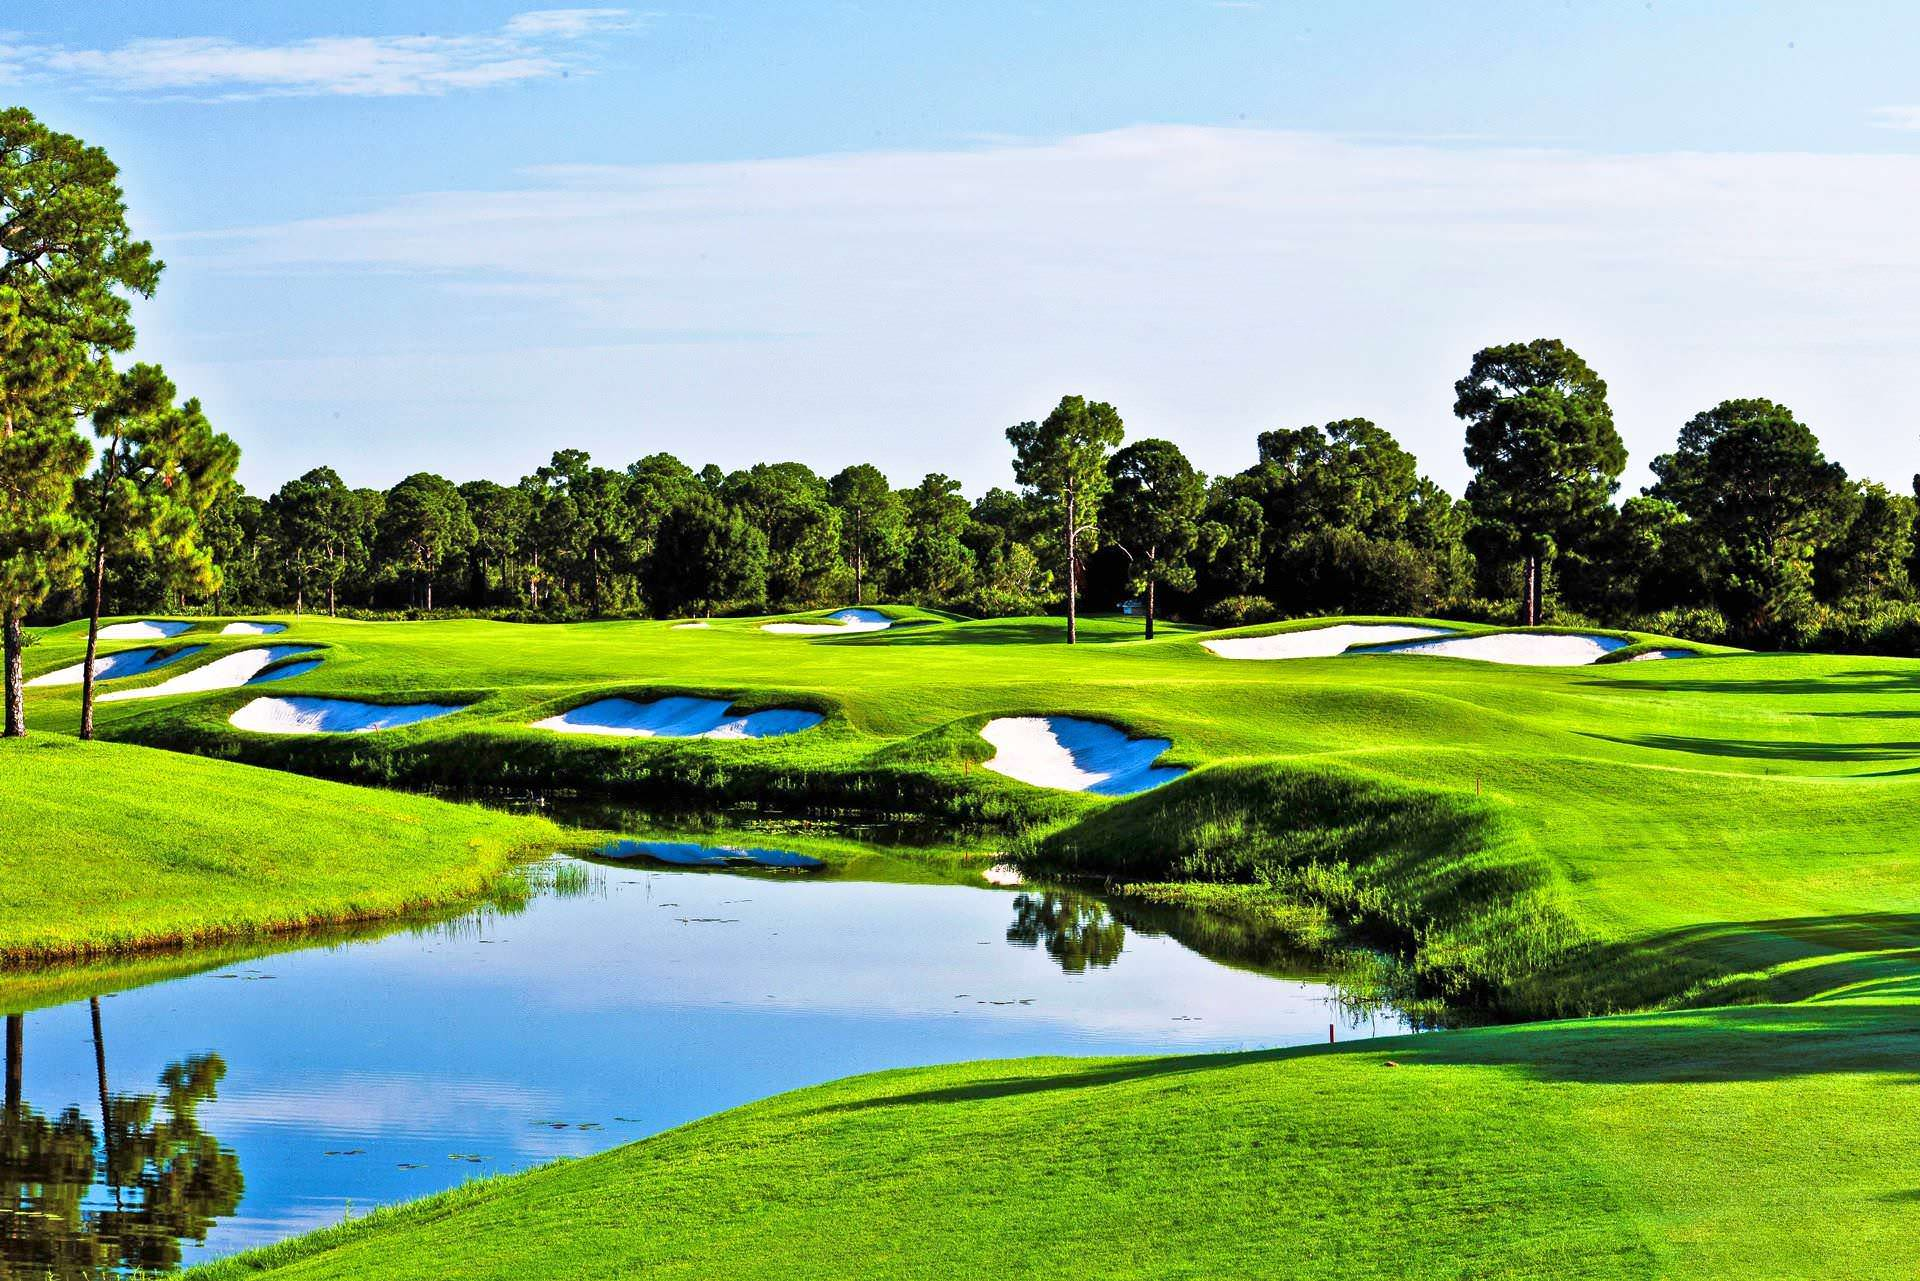 pga_village_golf_club_ryder_course - palm beach